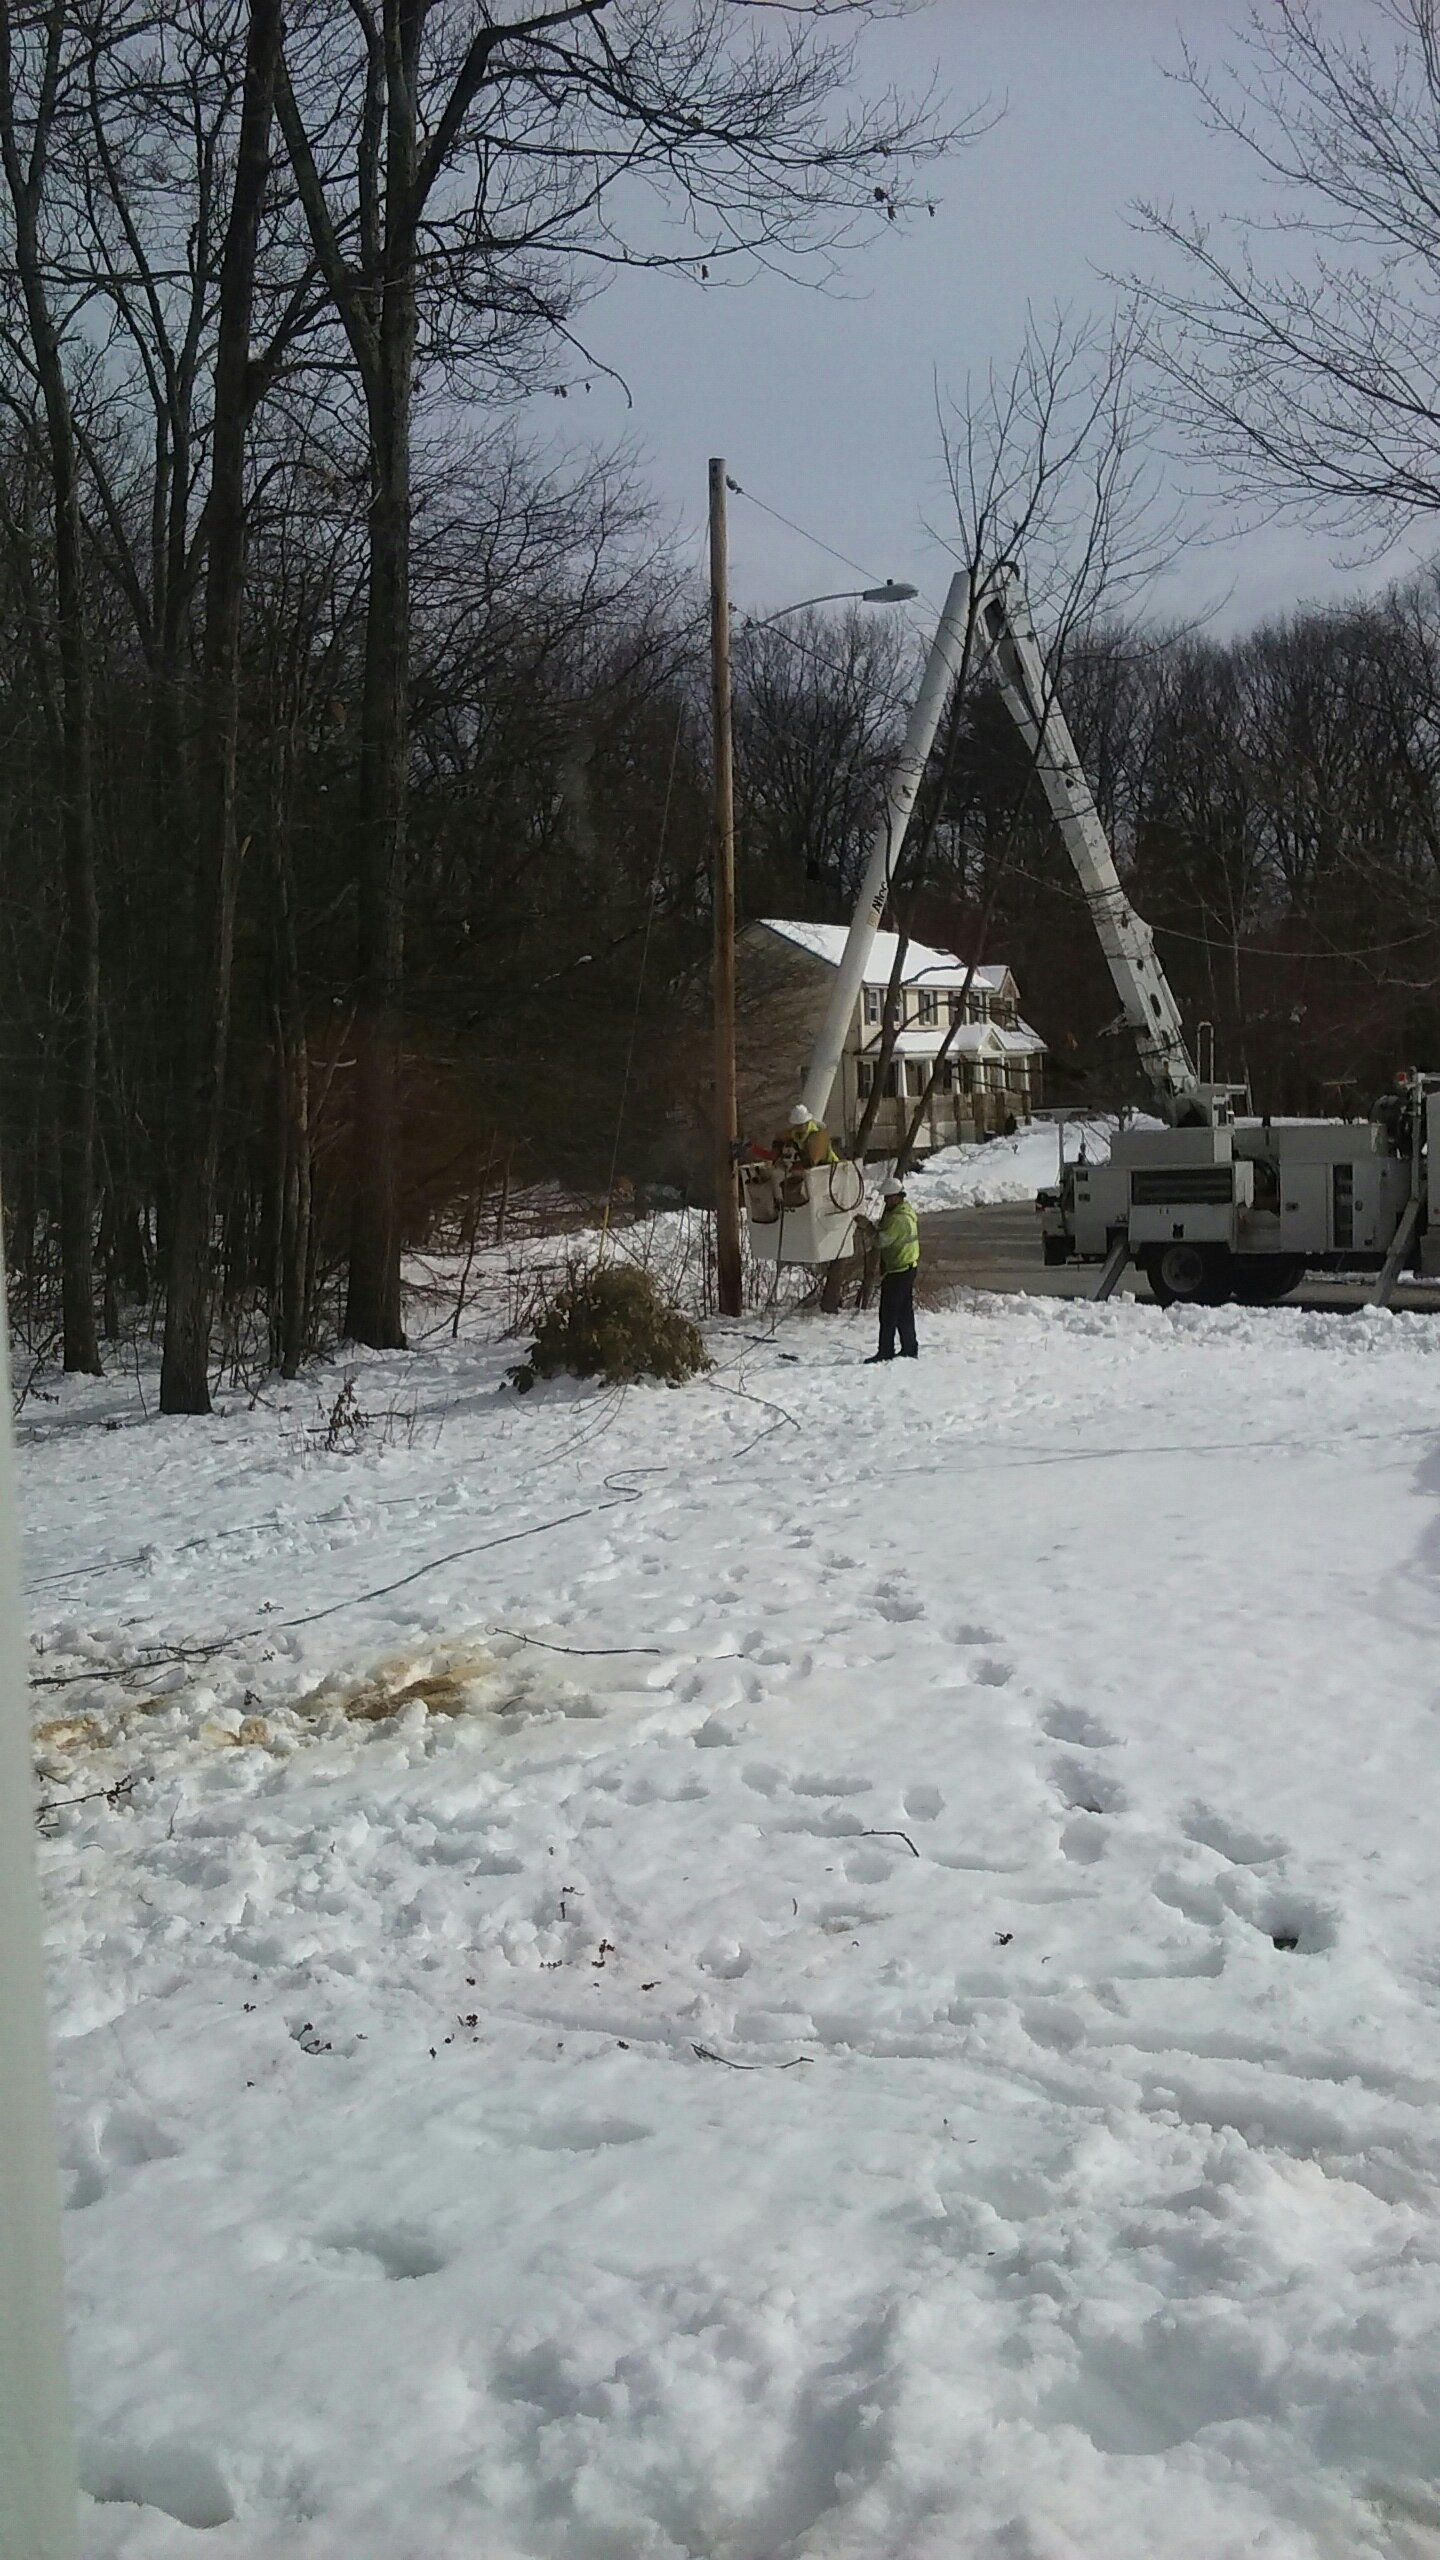 Power crew reconnecting line - Sunday morning.